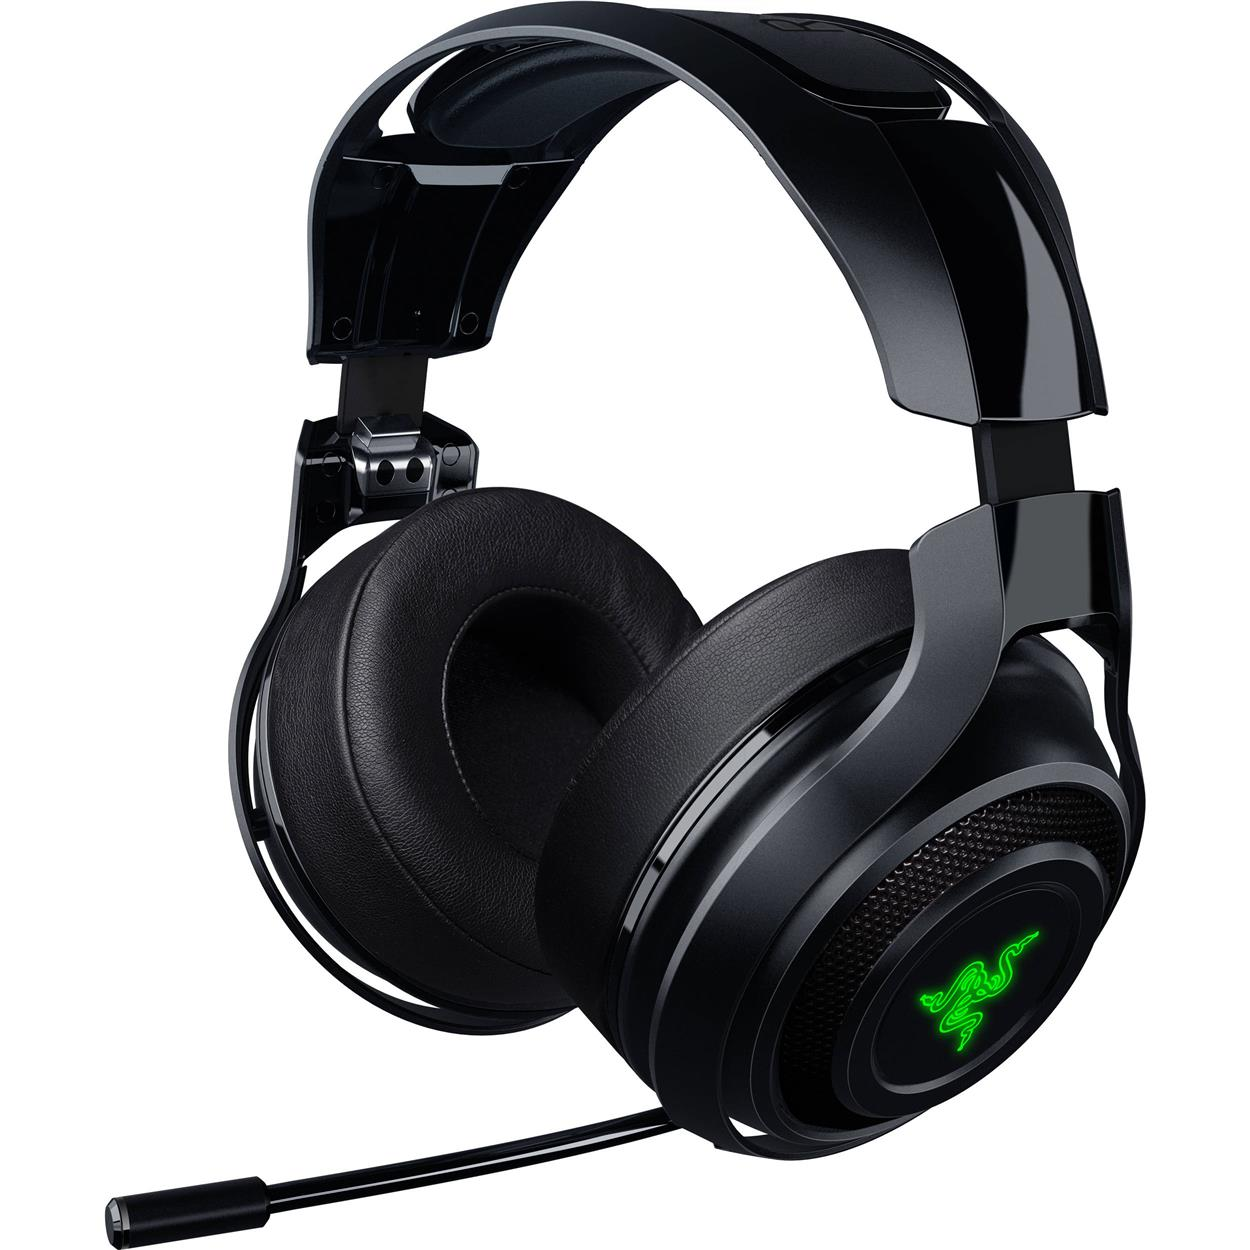 Wireless Headset Laptop Wire Center Steris Amsco 3011 Eagle 3000 Connector Circuit Board 146655 357 Ebay Razer Mano War 7 1 Surround End 5 20 2019 6 15 Pm Rh Lelong Com My For And Phone